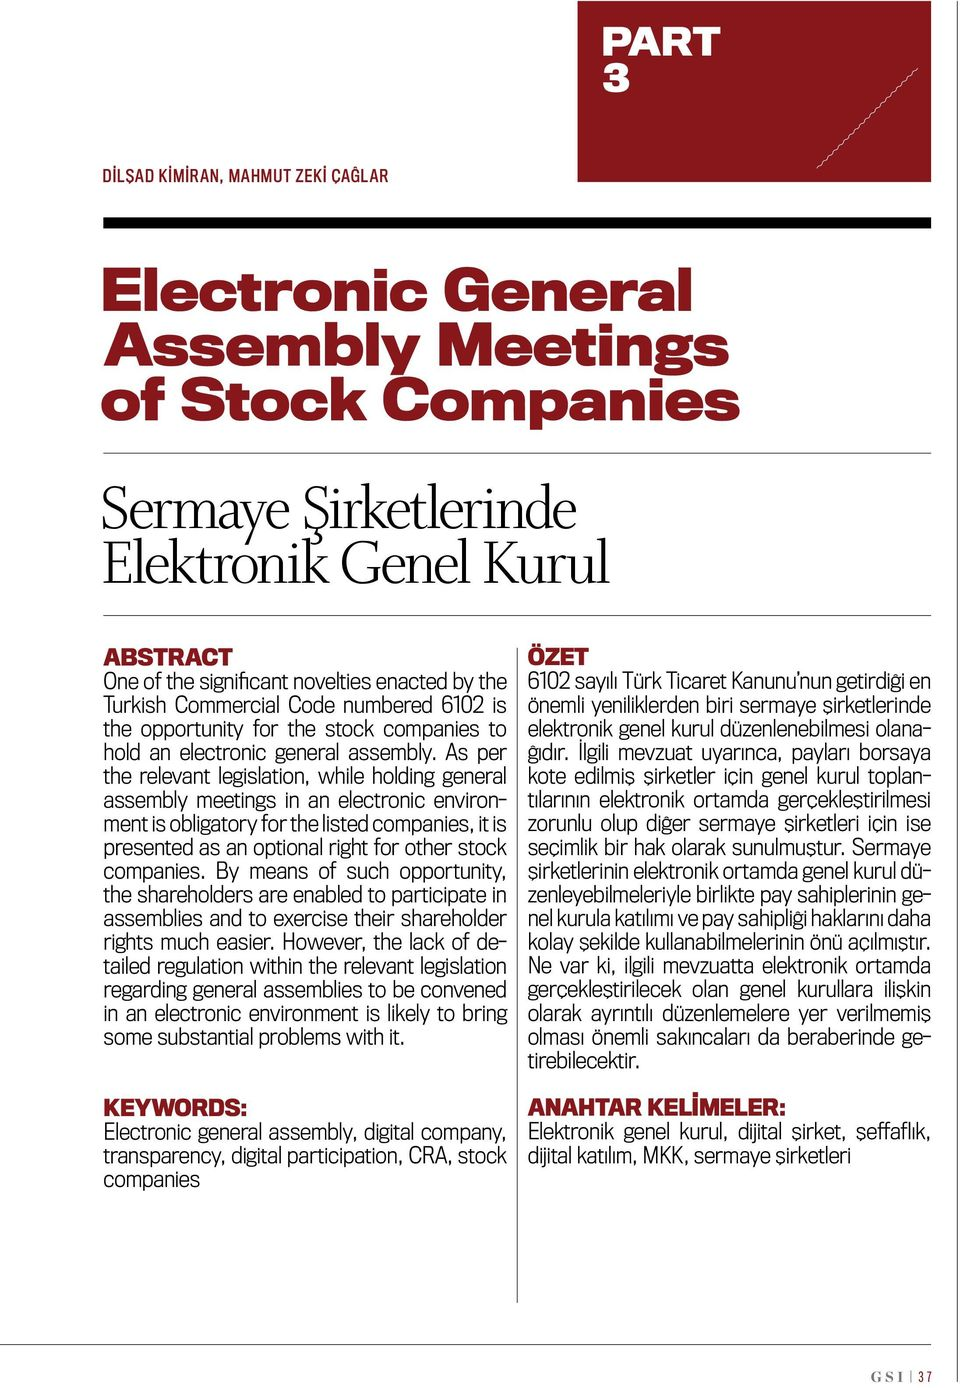 As per the relevant legislation, while holding general assembly meetings in an electronic environment is obligatory for the listed companies, it is presented as an optional right for other stock